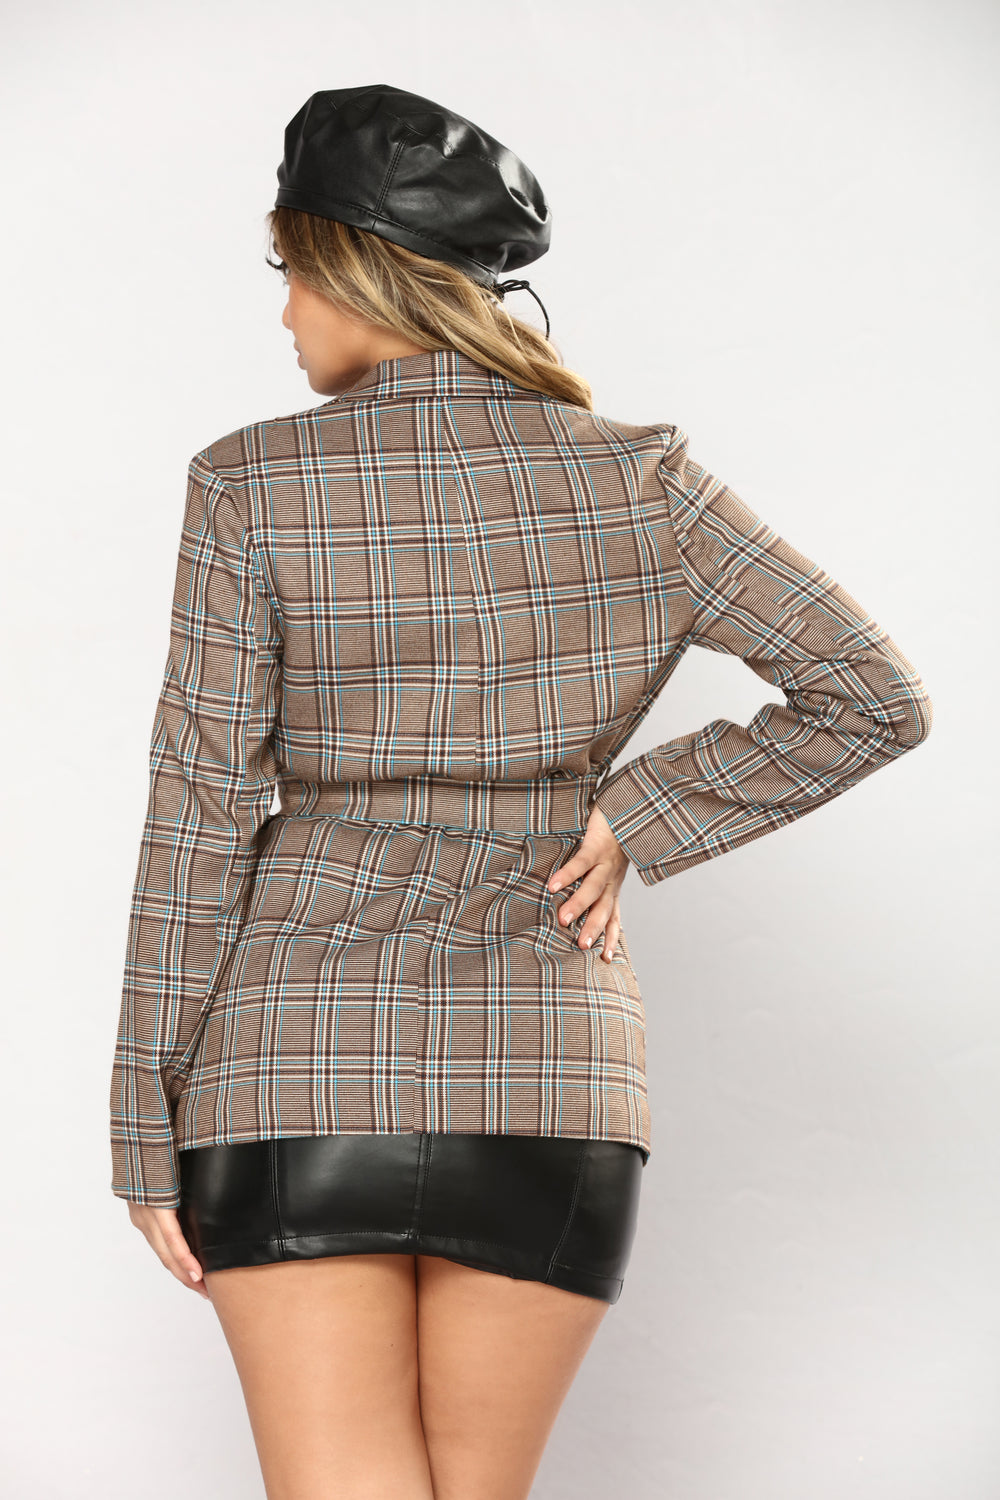 All Facts Plaid Blazer - Brown/Multi